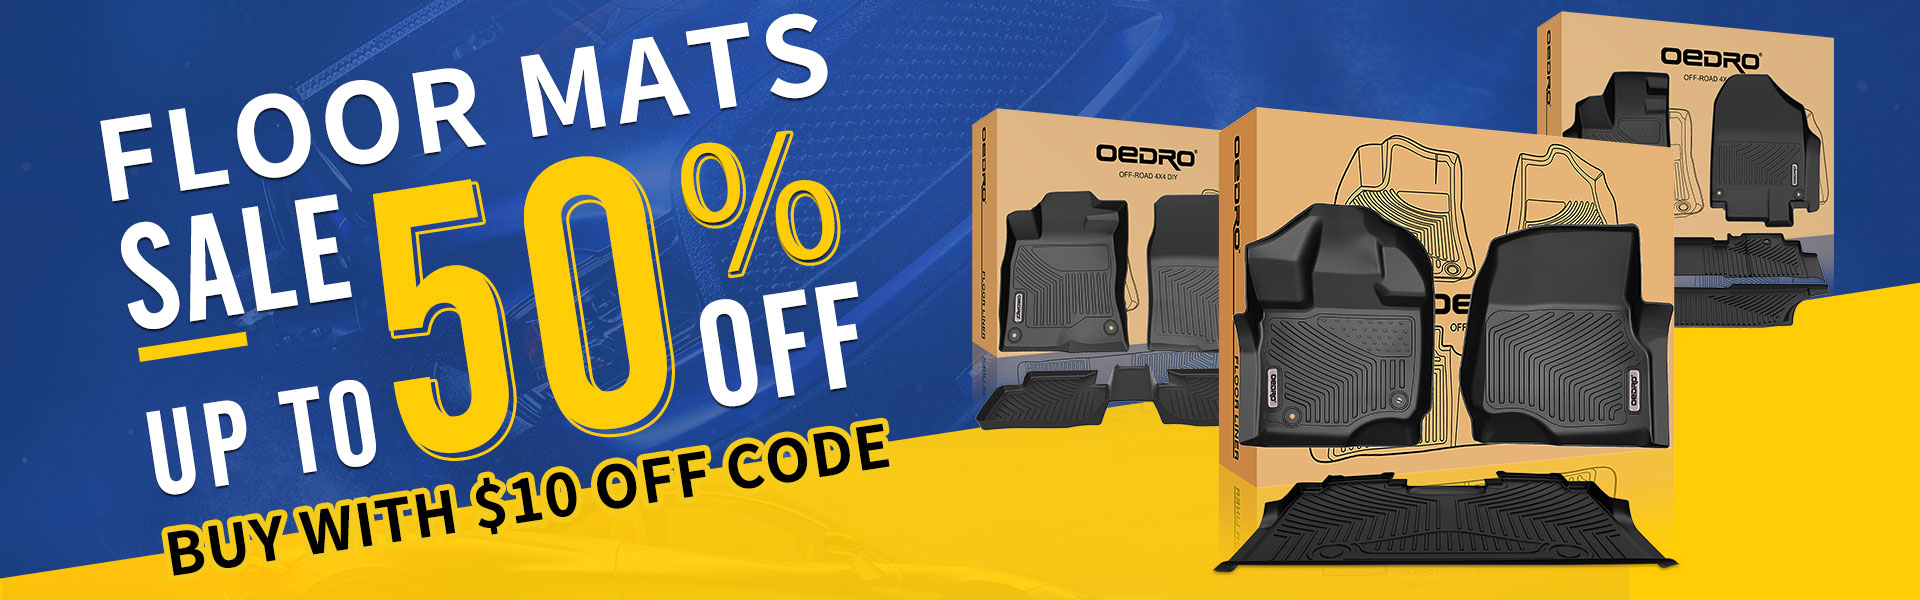 Oedro.com Floor Mats Sale Up To 50% off